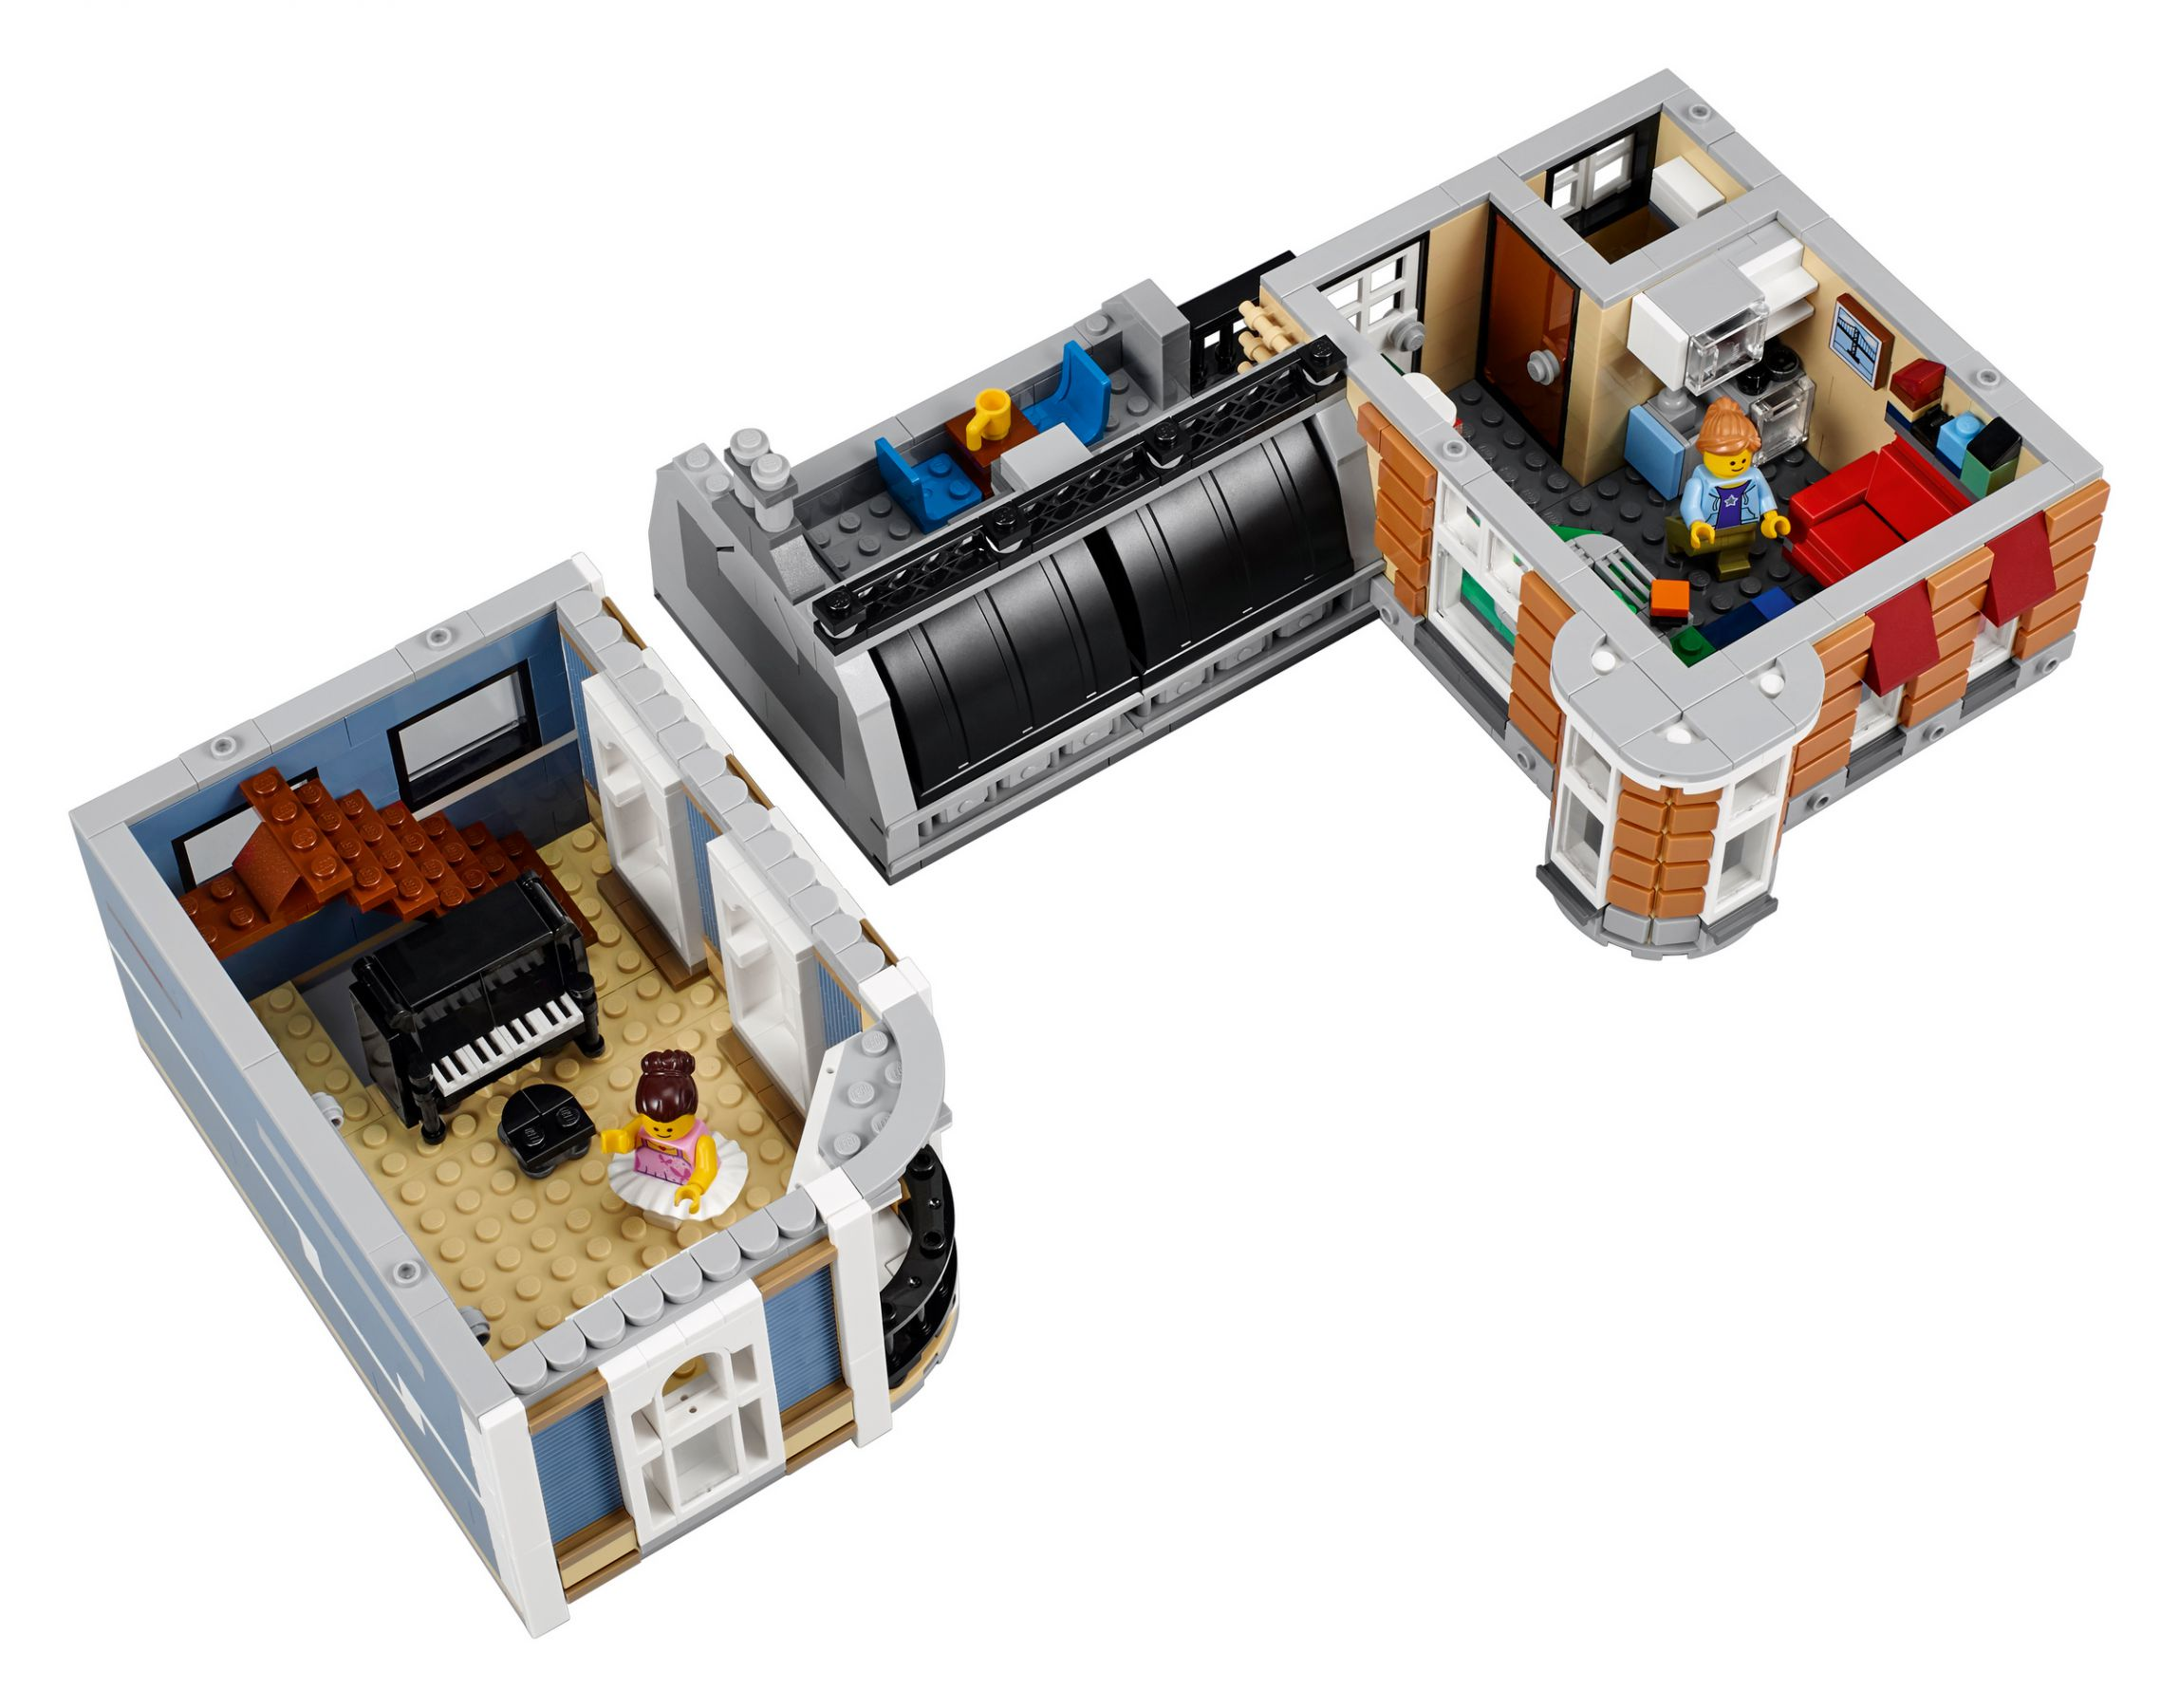 LEGO Advanced Models 10255 Assembly Square / Stadtleben LEGO_10255_alt7.jpg